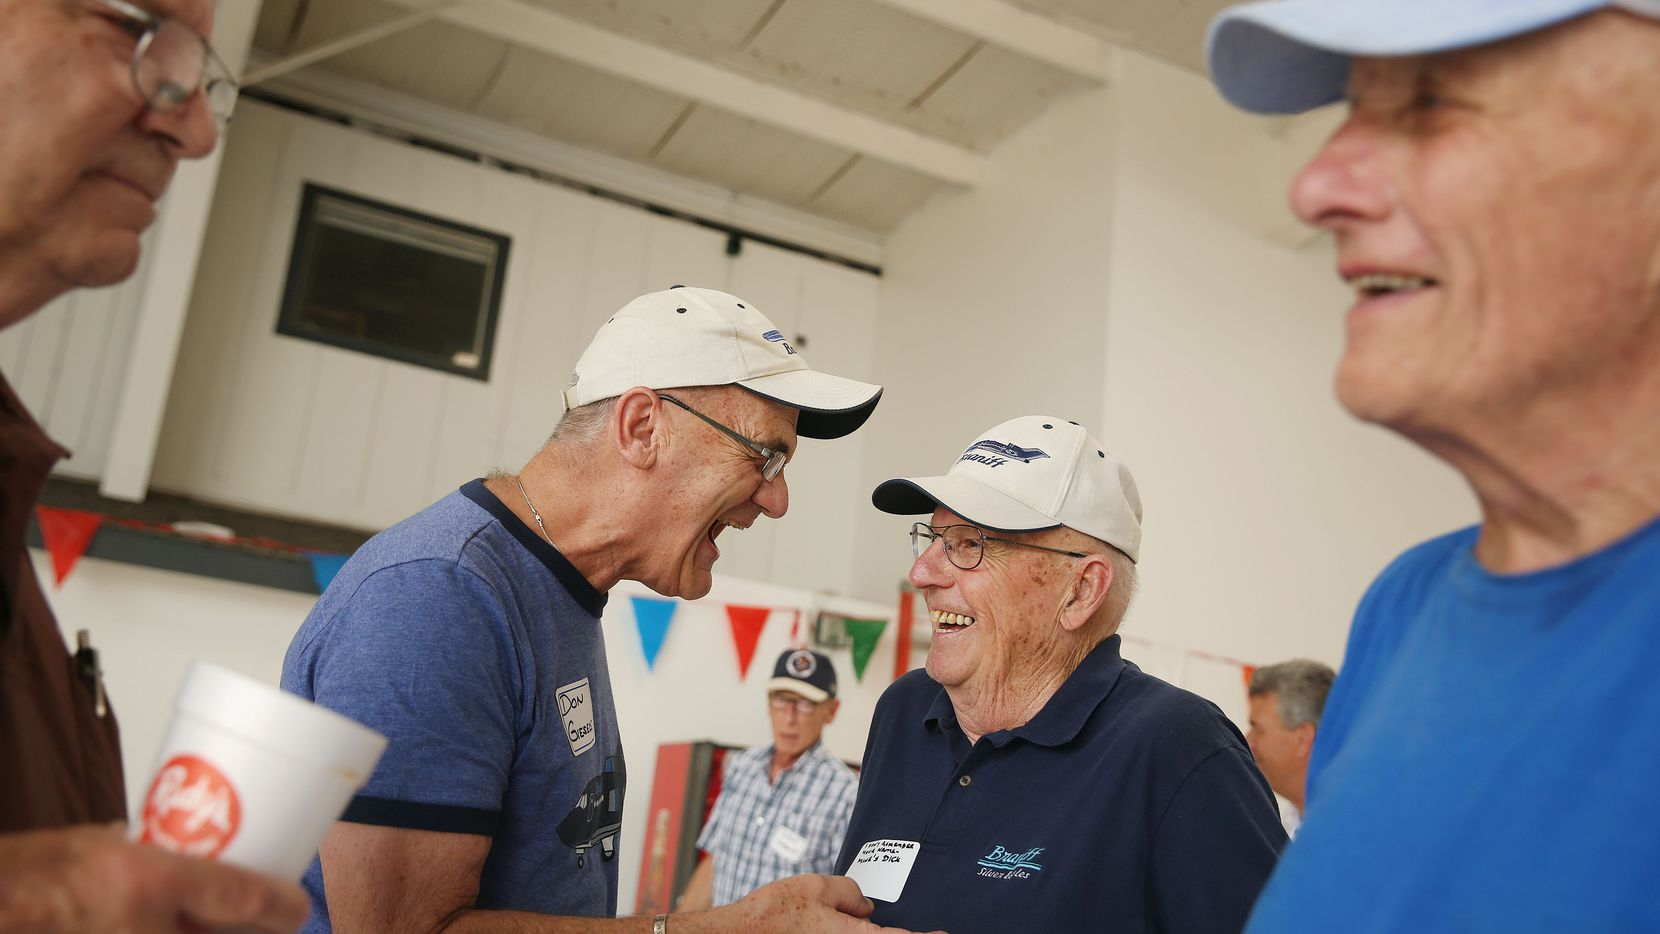 Don Gieseke (center left) and Dick Strohmeier, both retired Braniff pilots, shared a laugh during the 41st annual Braniff International Airways pilots picnic at Denton Municipal Airport in Denton on Monday.